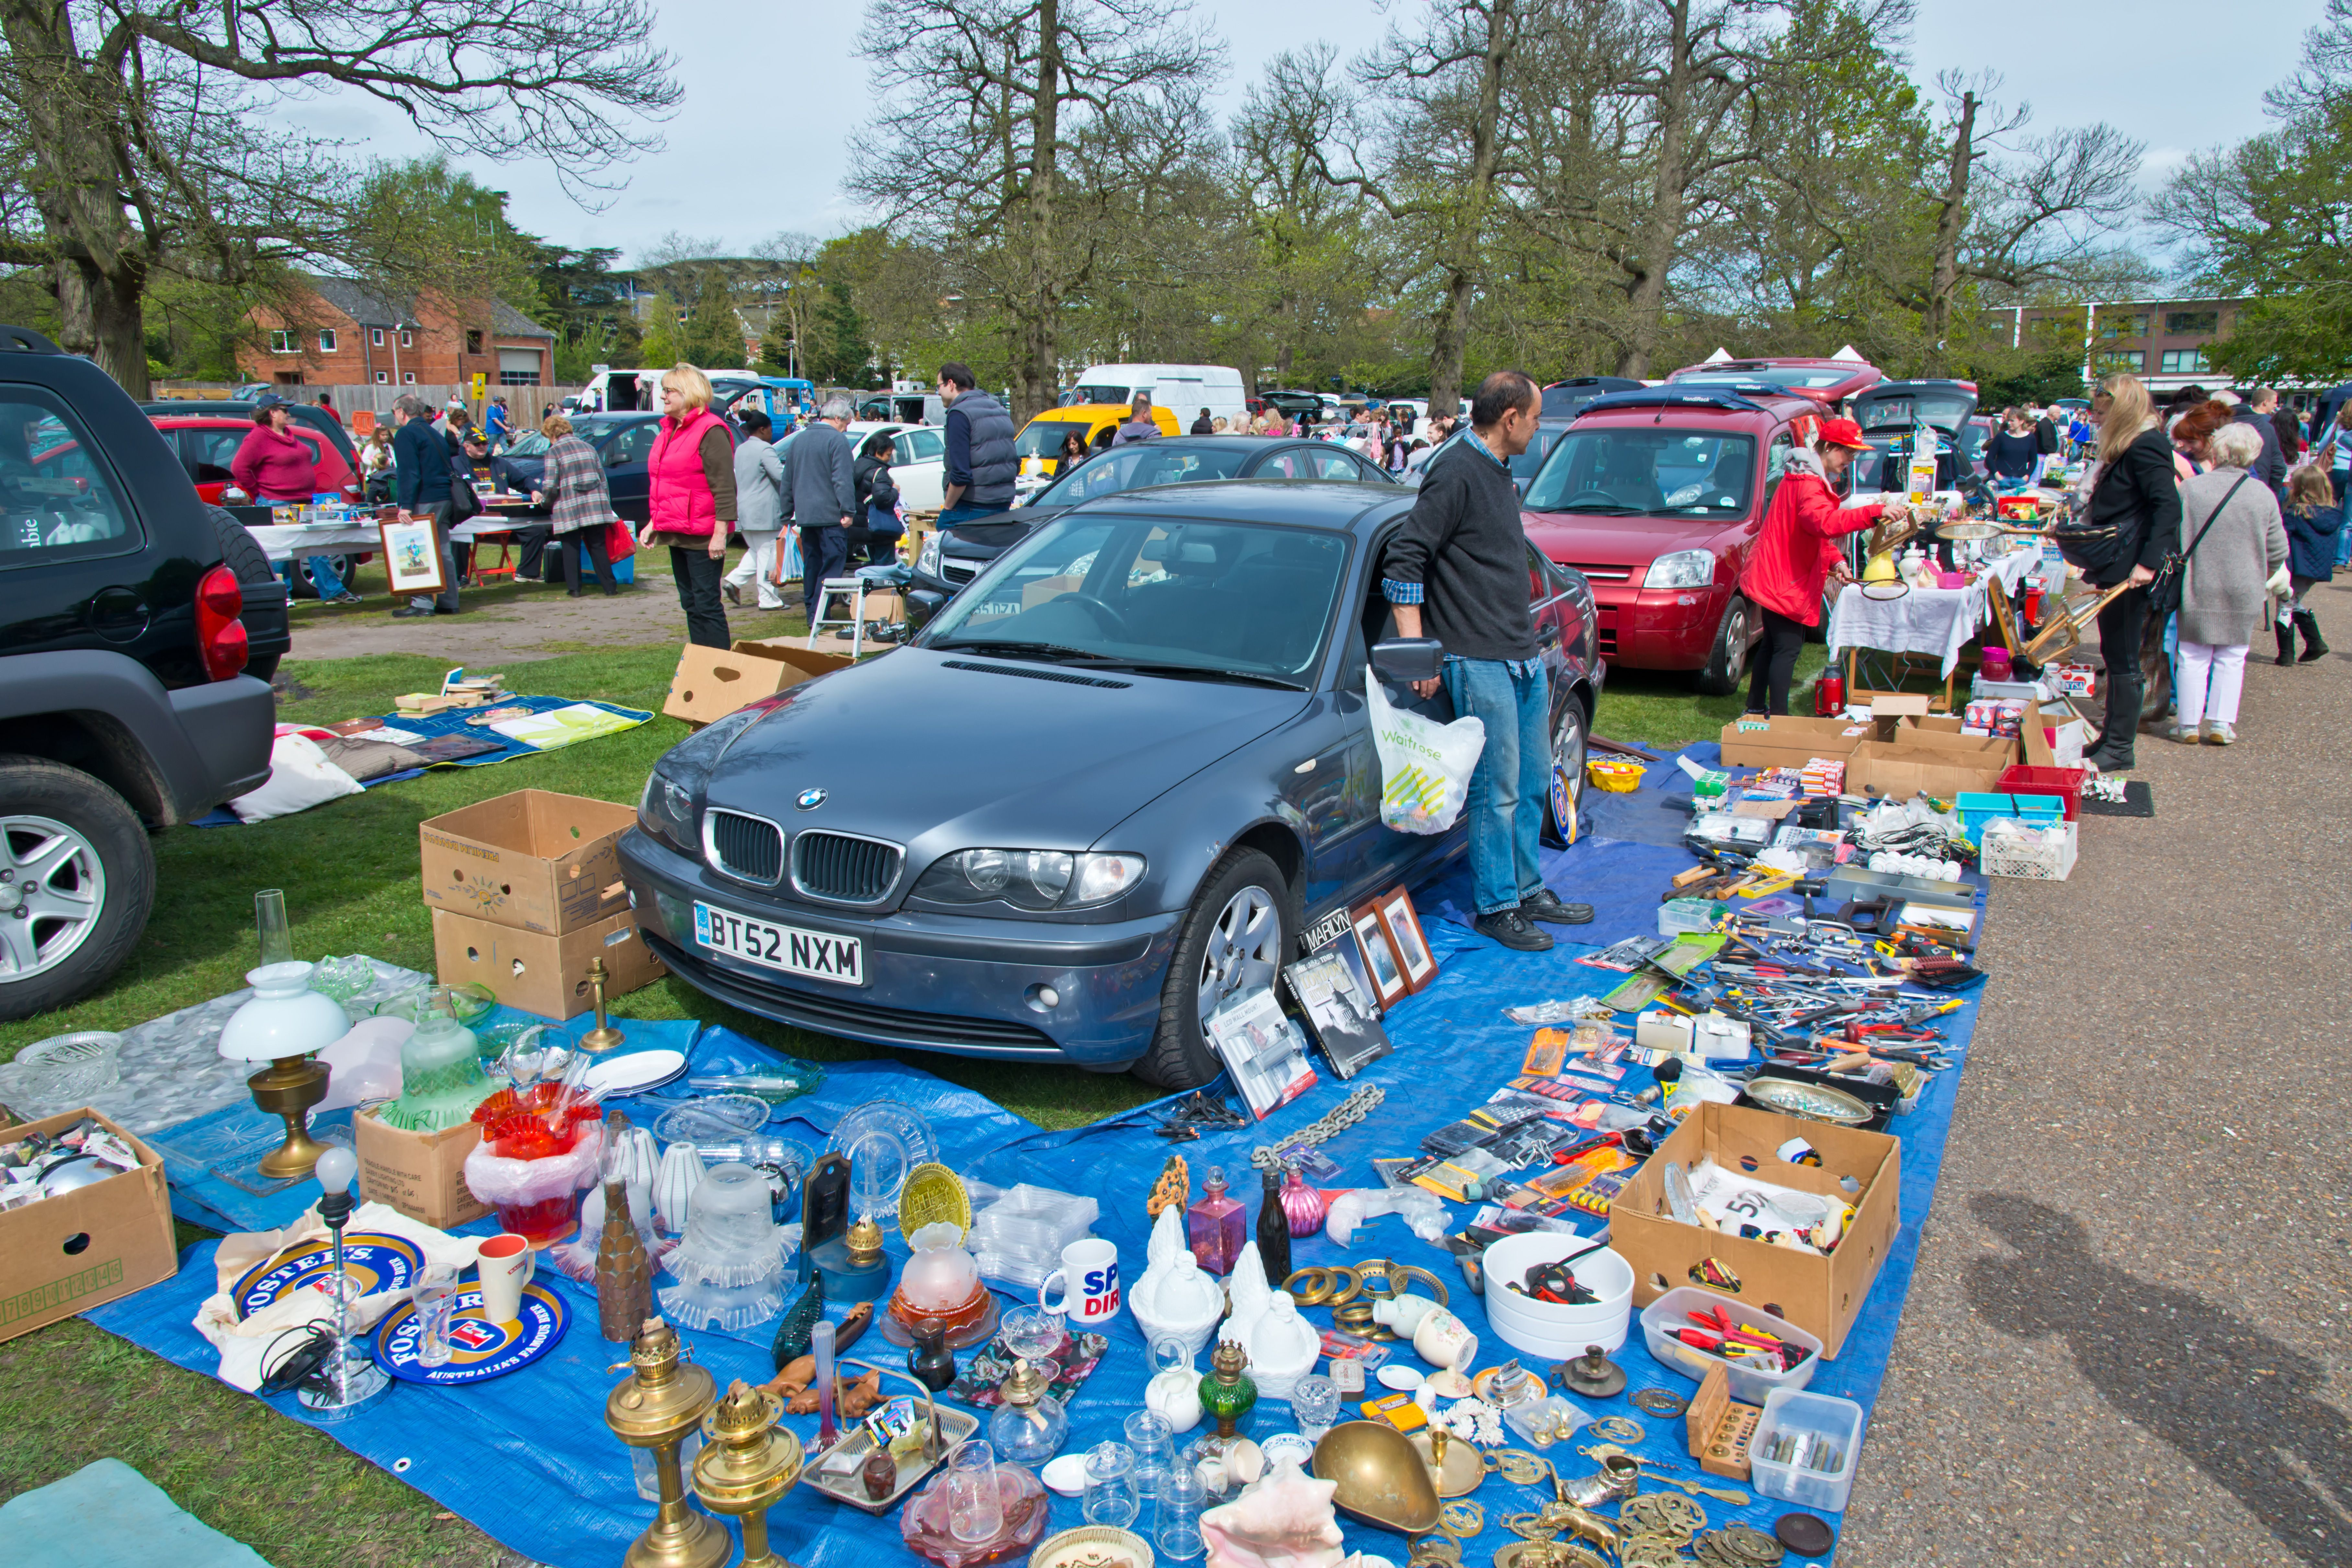 Car boot sale | Car Boot Sale | Pinterest | Cars, News and As